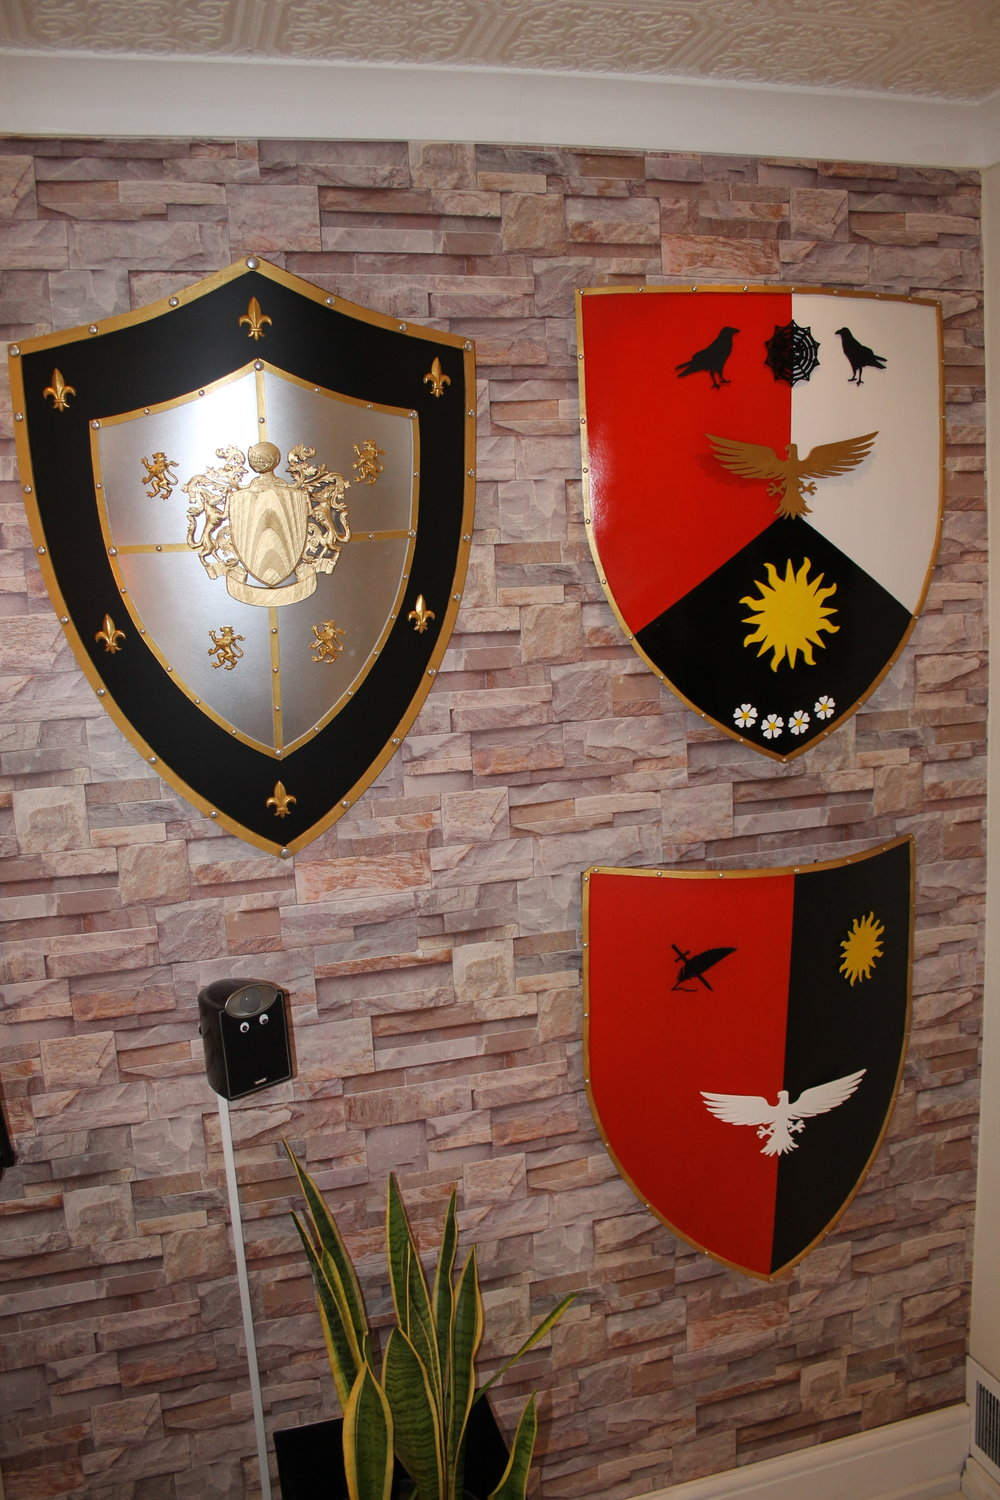 Black/red shields contain specific heraldry for house Orzel members. Black/silver shield = fictitious.